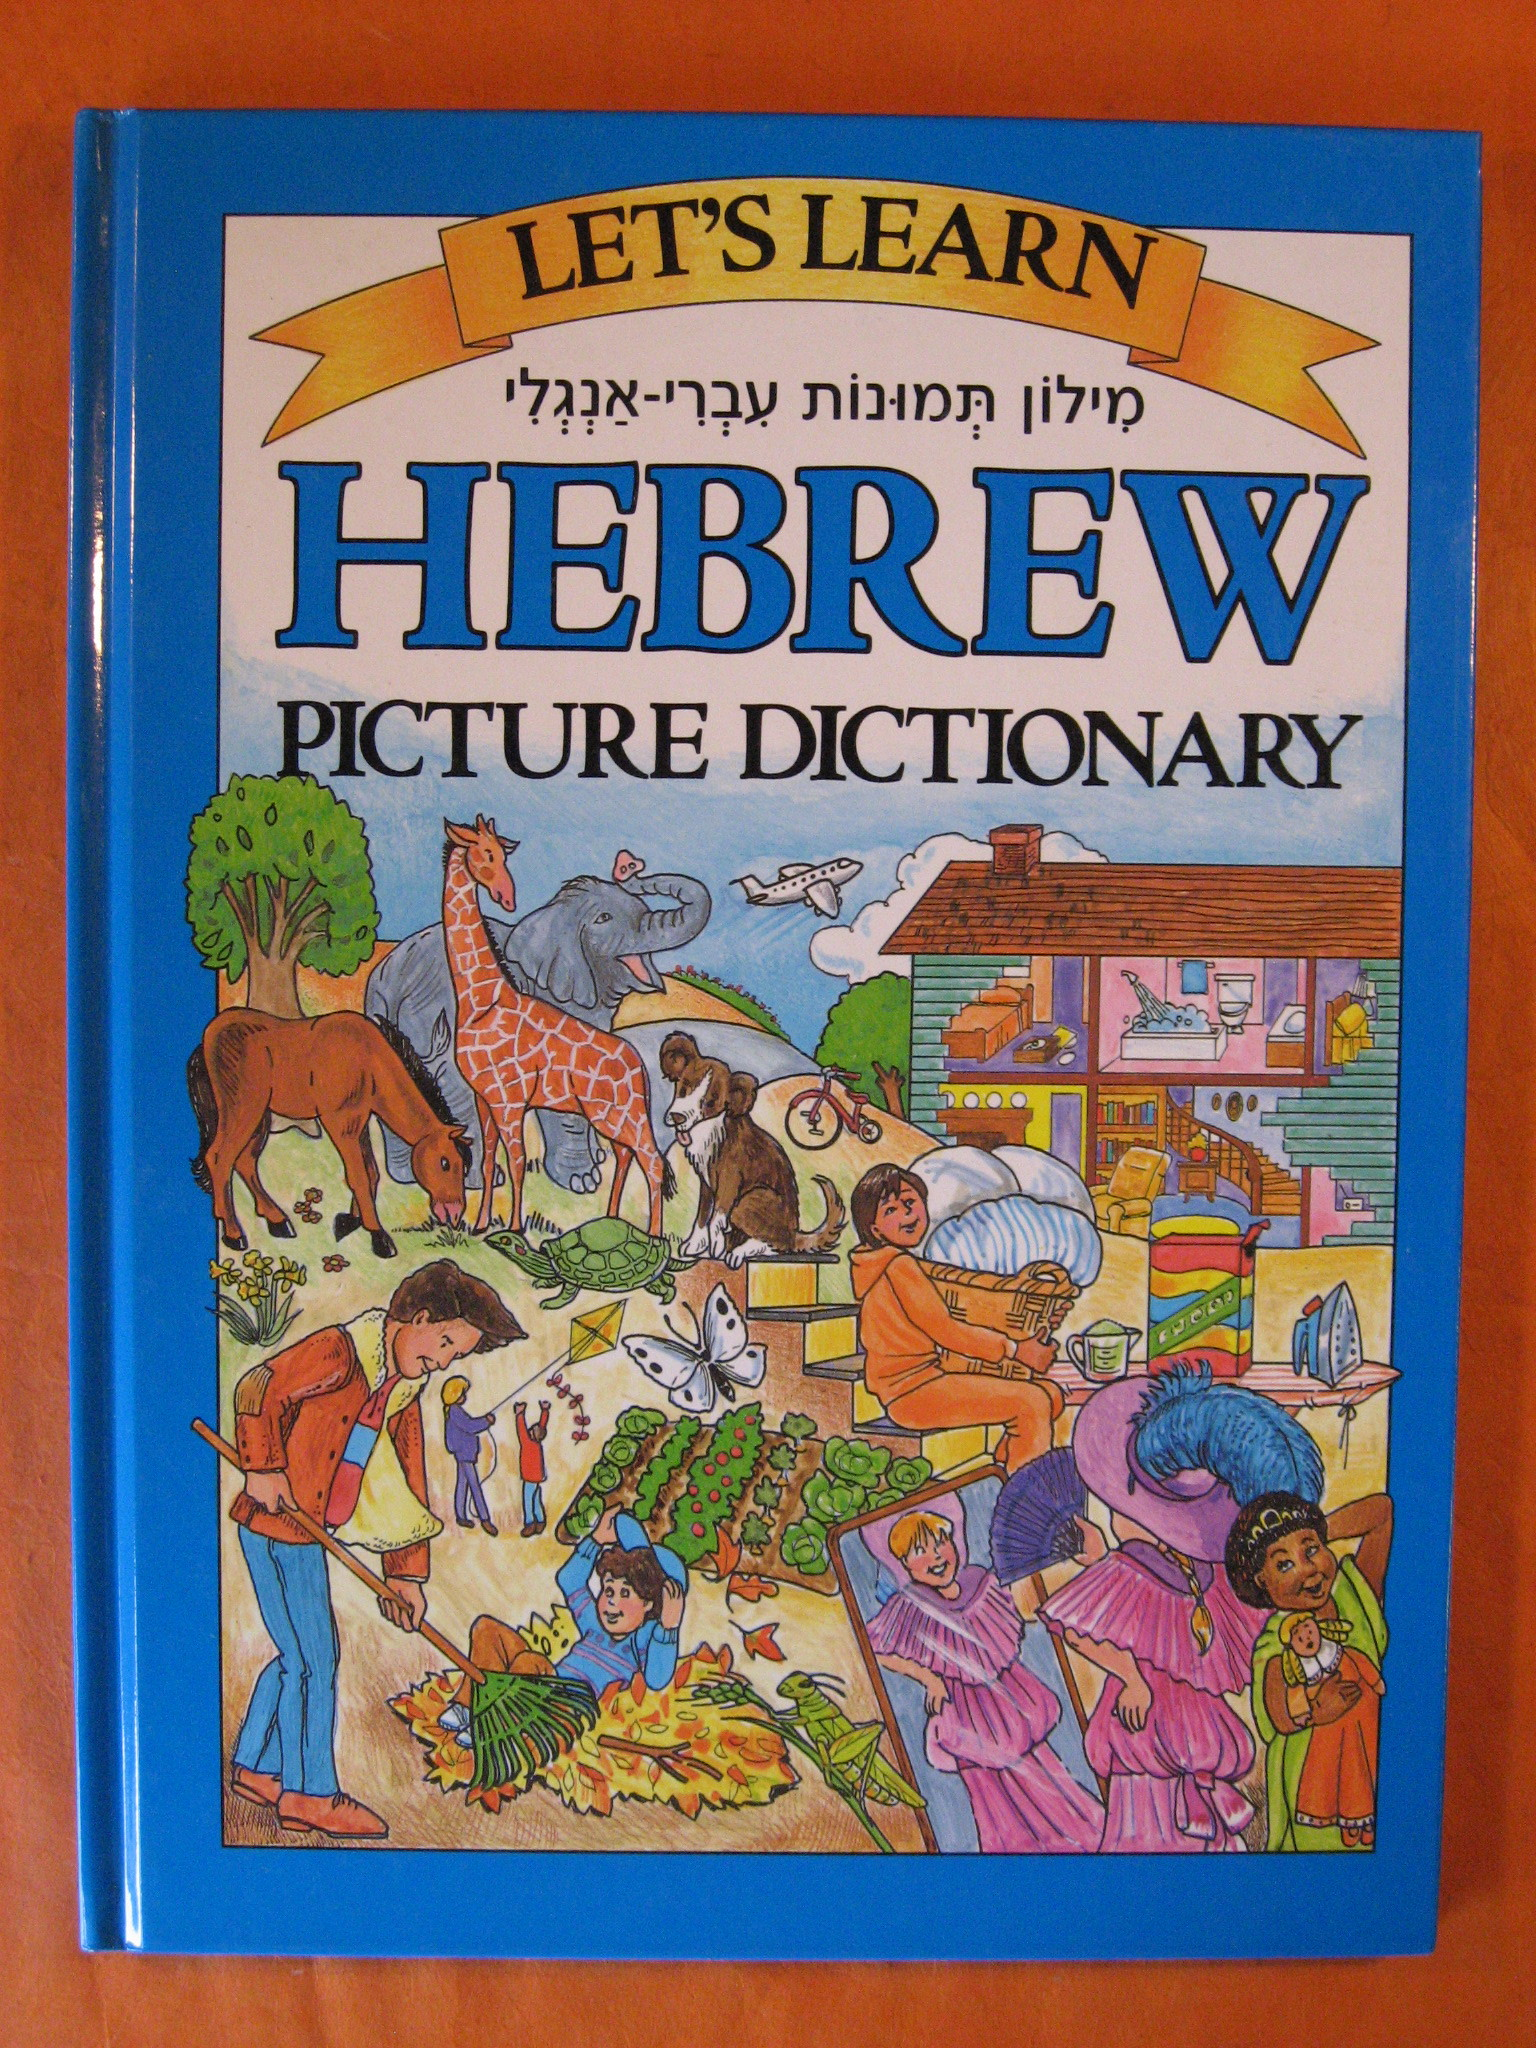 Let's Learn Hebrew: Children's Picture Dictionary, Editors of Passport Books